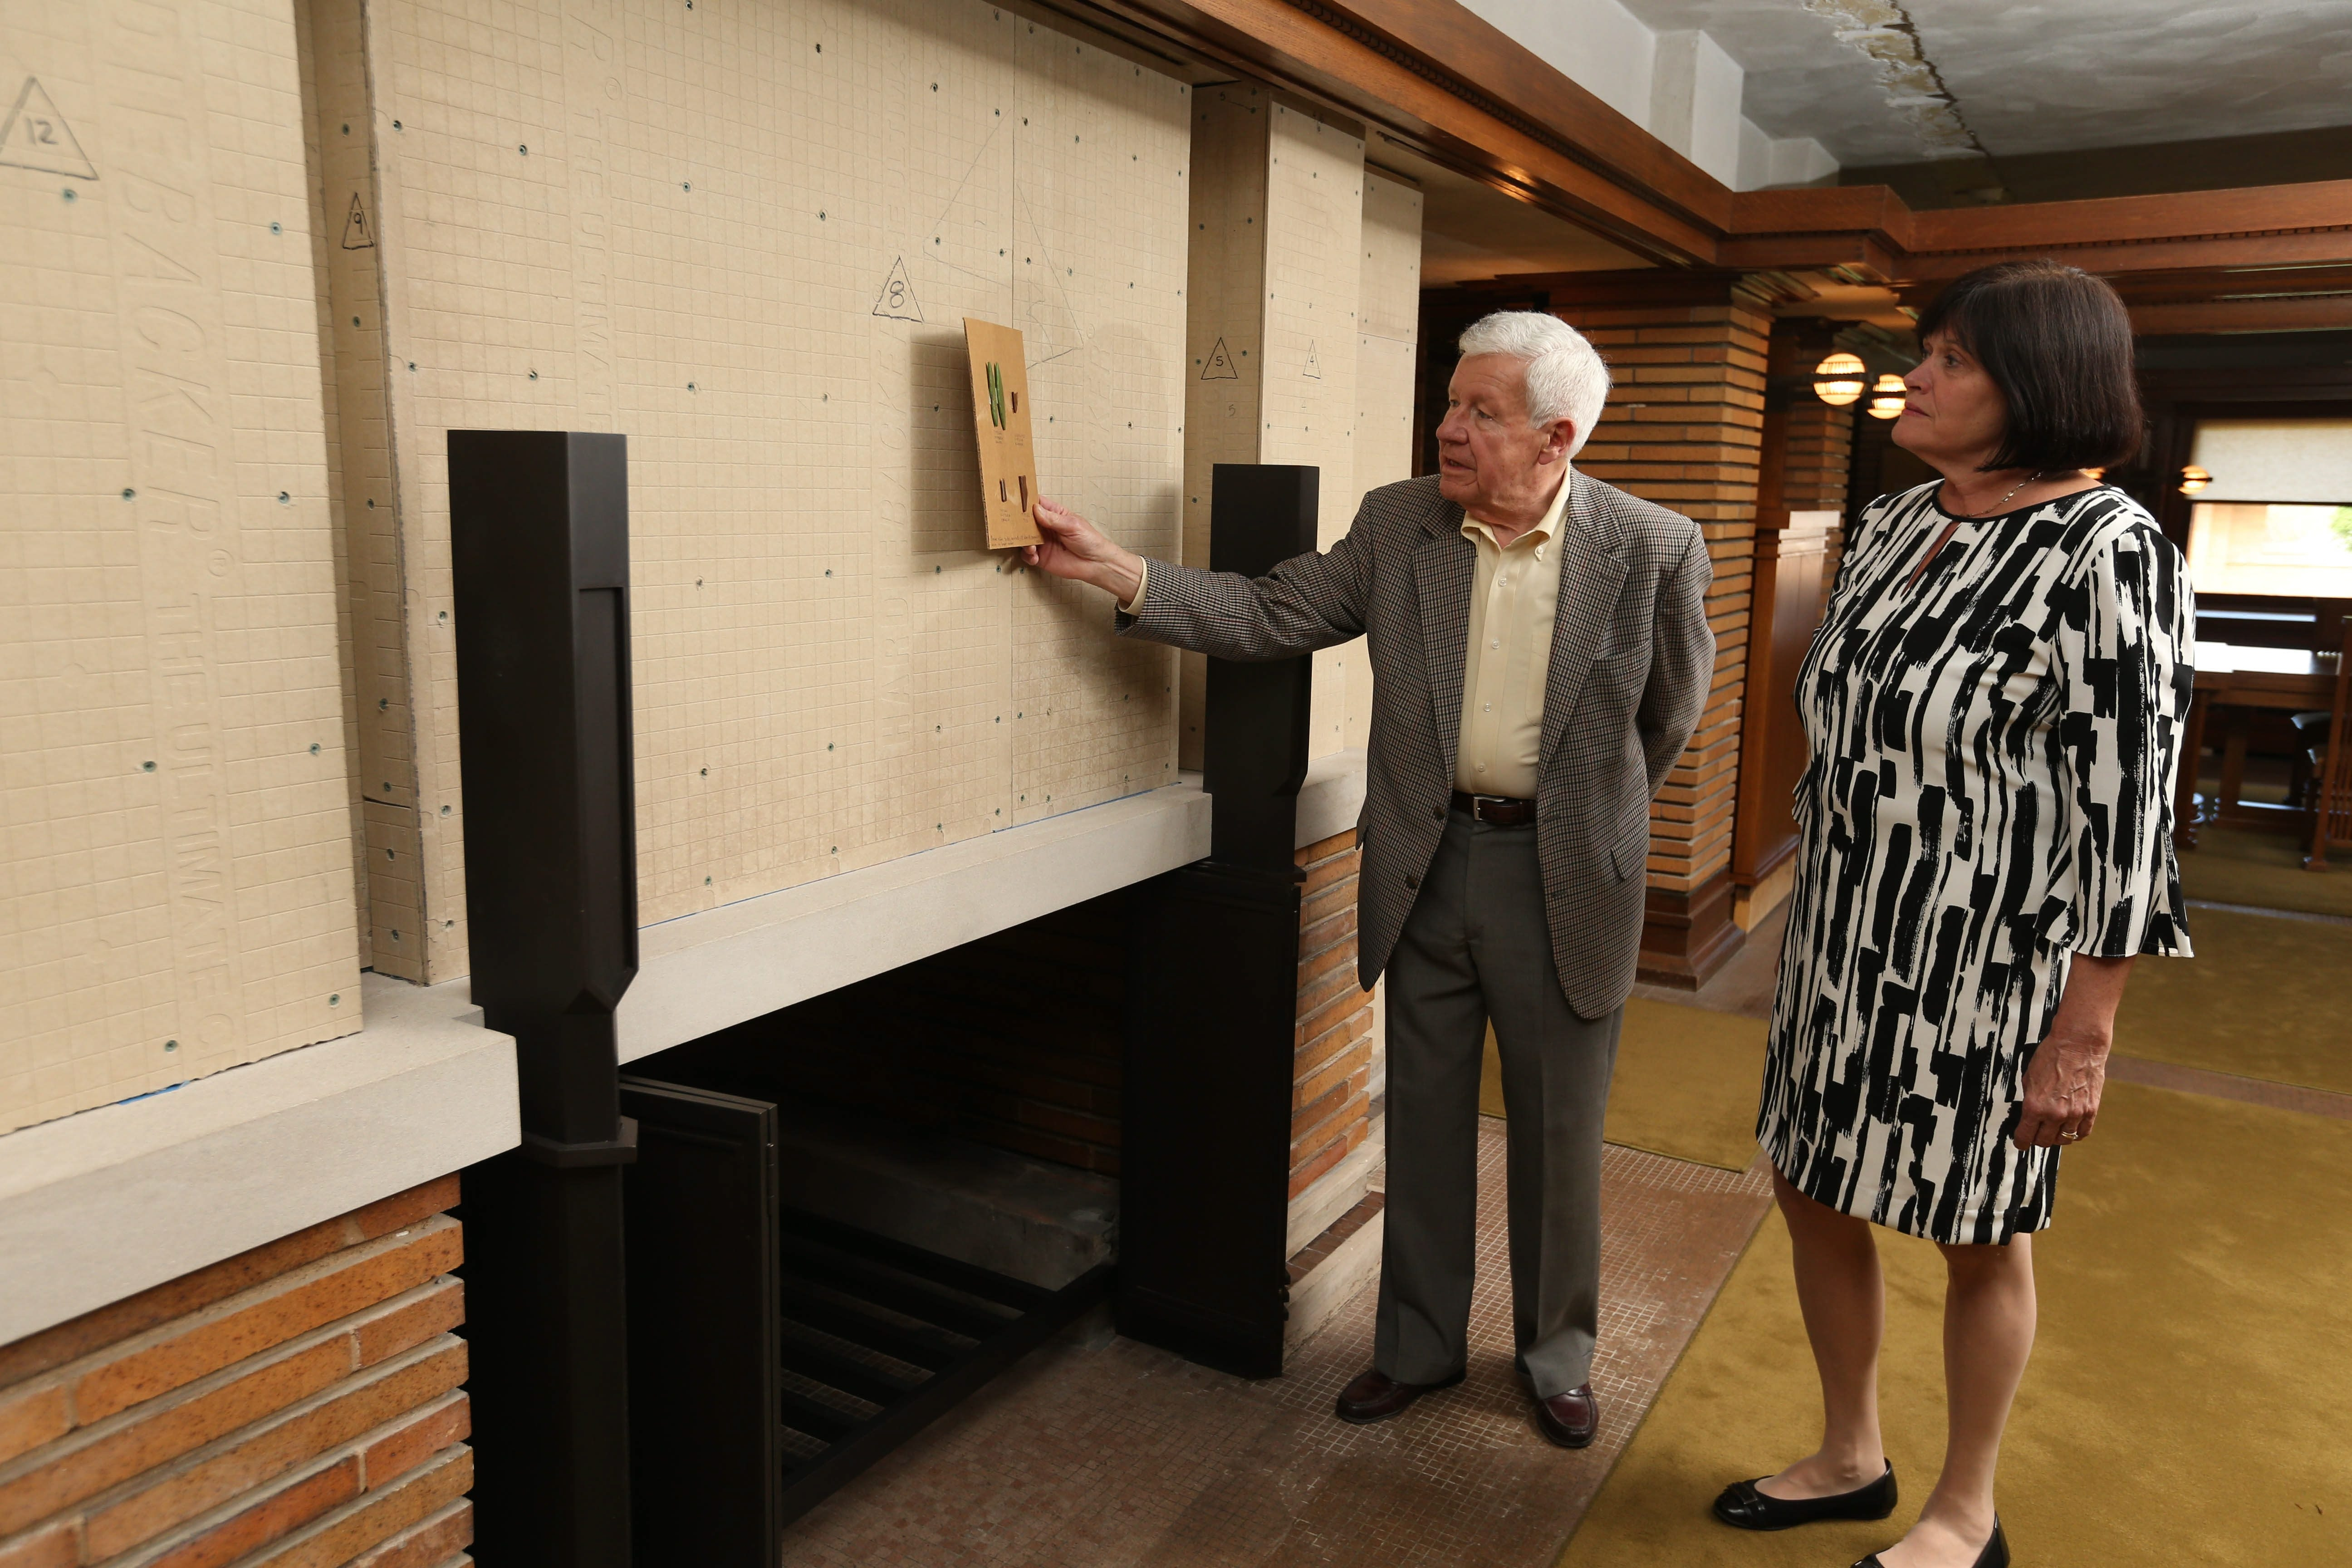 Mary Roberts, executive director of the Darwin D. Martin House, and Ted Lownie, restoration architect from HHL Architects, look at some of the original glass mosaic pieces that are being reproduced for the restoration of one of the fireplaces.